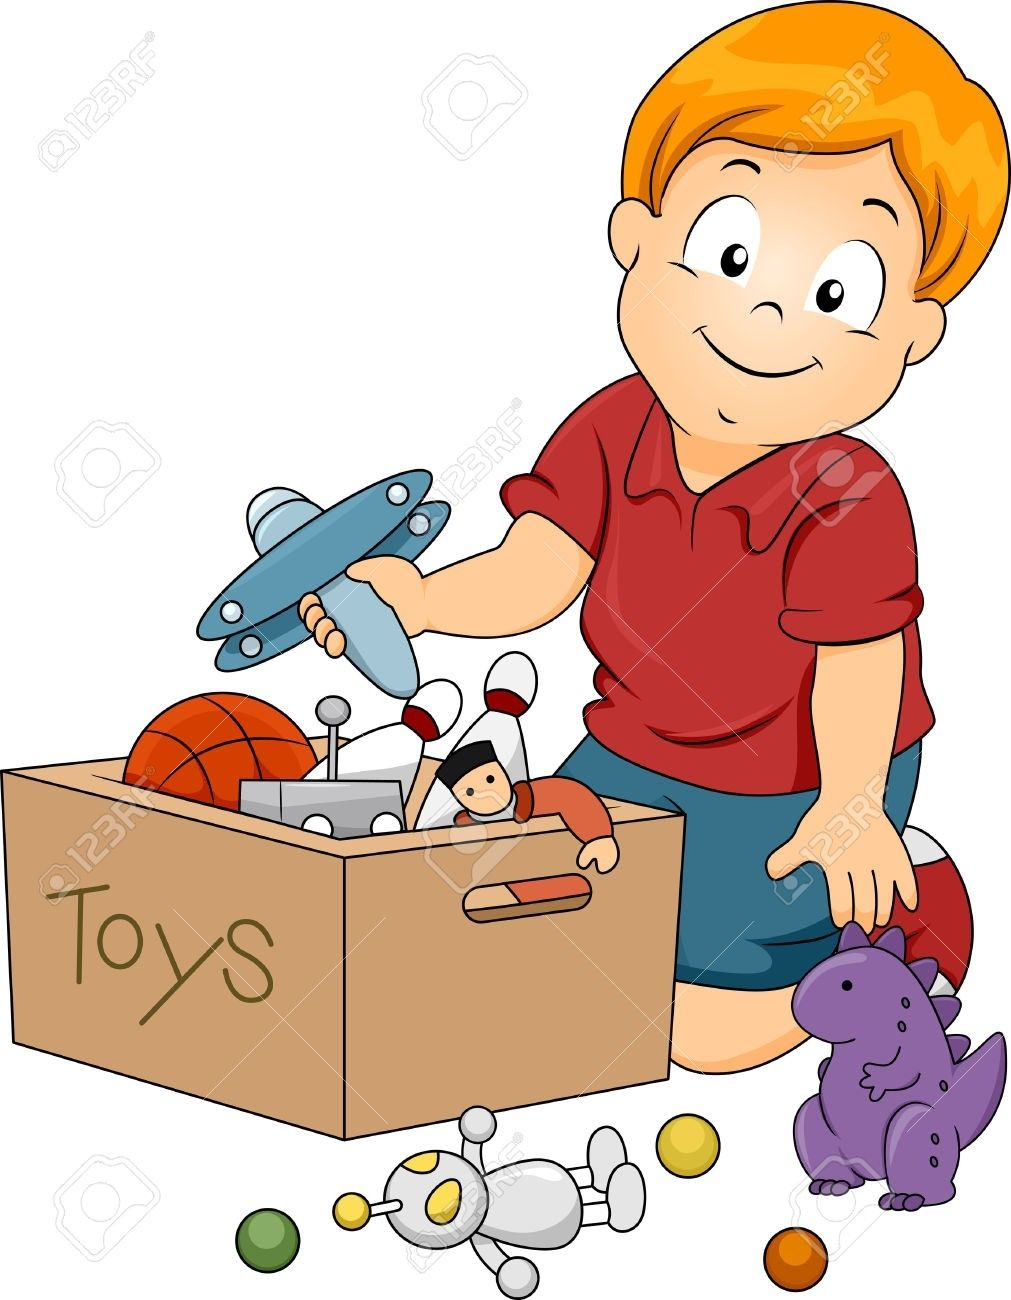 Boy clean up toys clipart graphic freeuse stock Kids Cleaning Up Toys Clipart - Clipartxtras within Kids Cleaning Up ... graphic freeuse stock